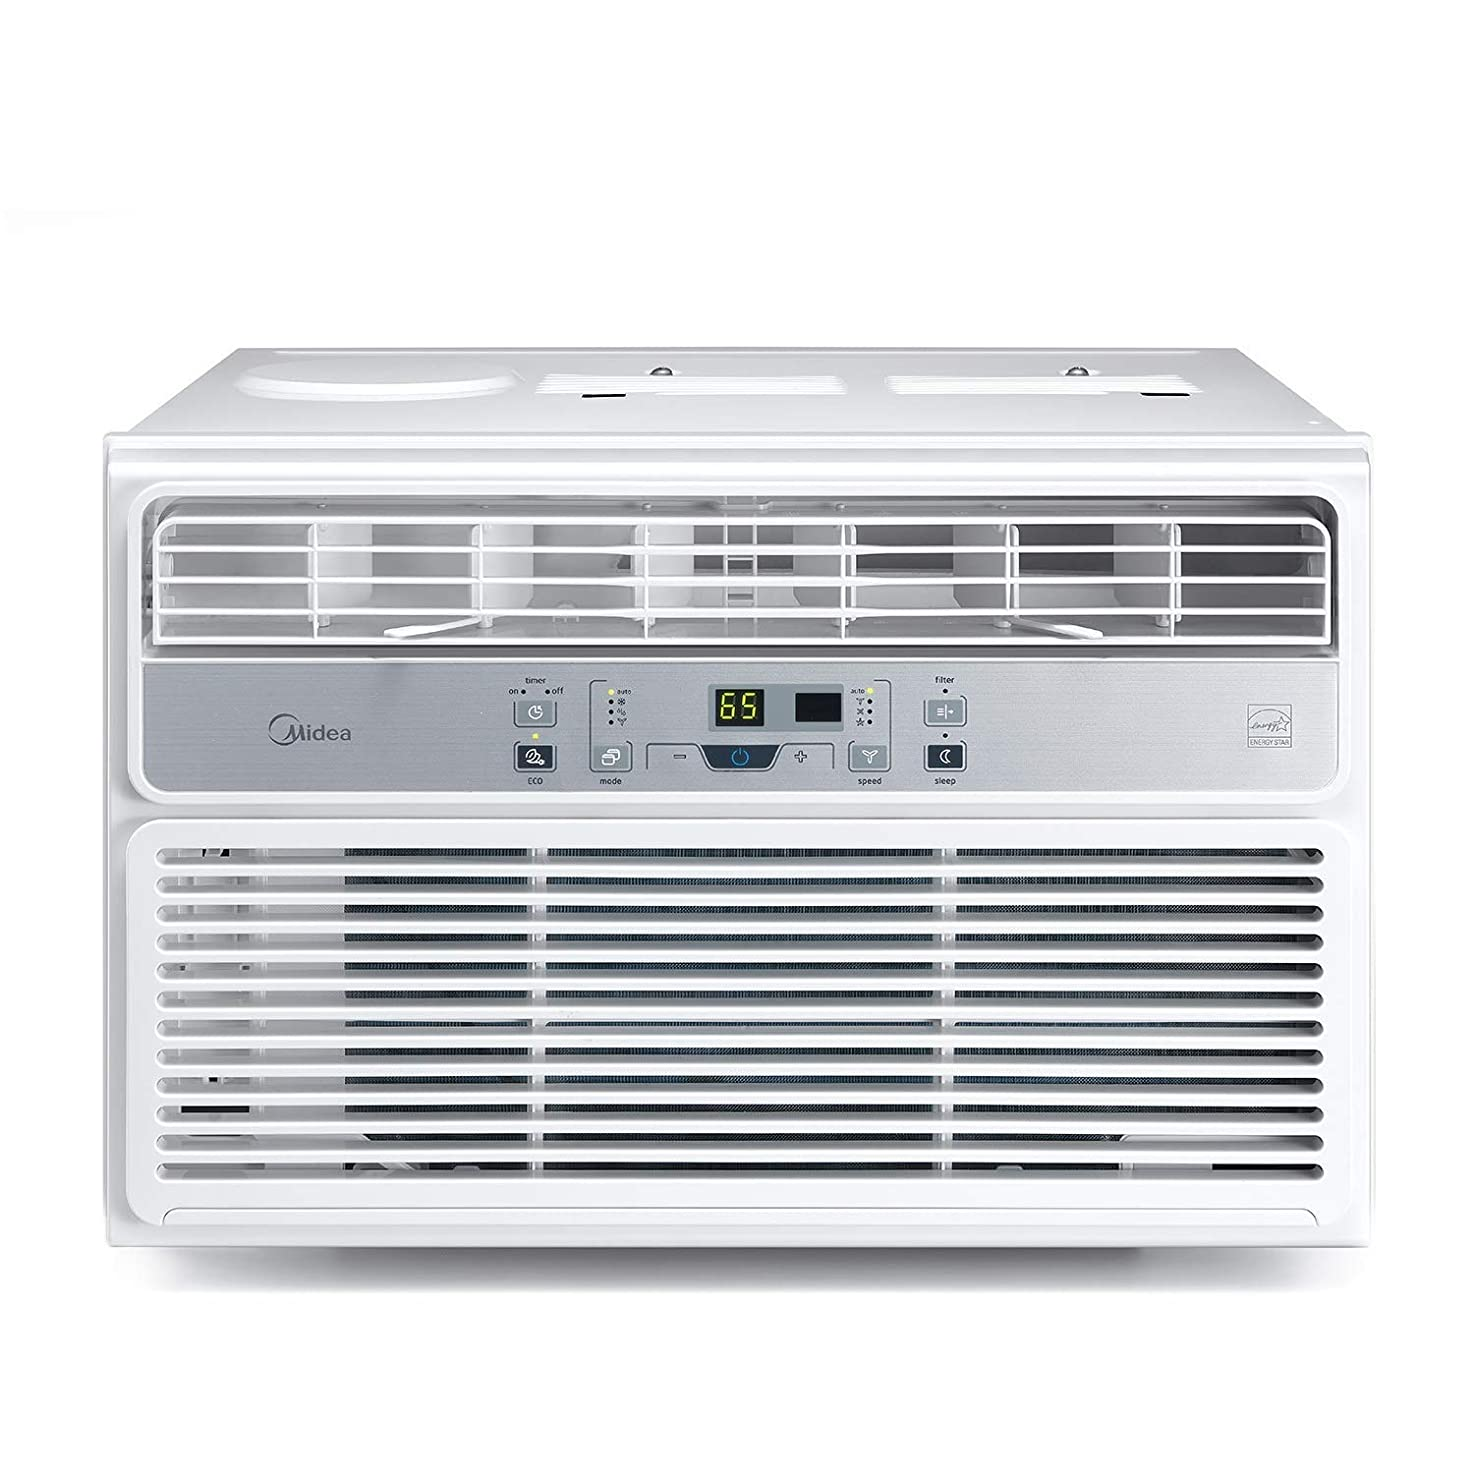 MIDEA MAW10R1BWT Window Air Conditioner 10000 BTU Easycool AC (Cooling, Dehumidifier and Fan Functions) for Rooms up to 450 Sq, ft. with Remote Control, 10,000, White edkhswjvwxogt9